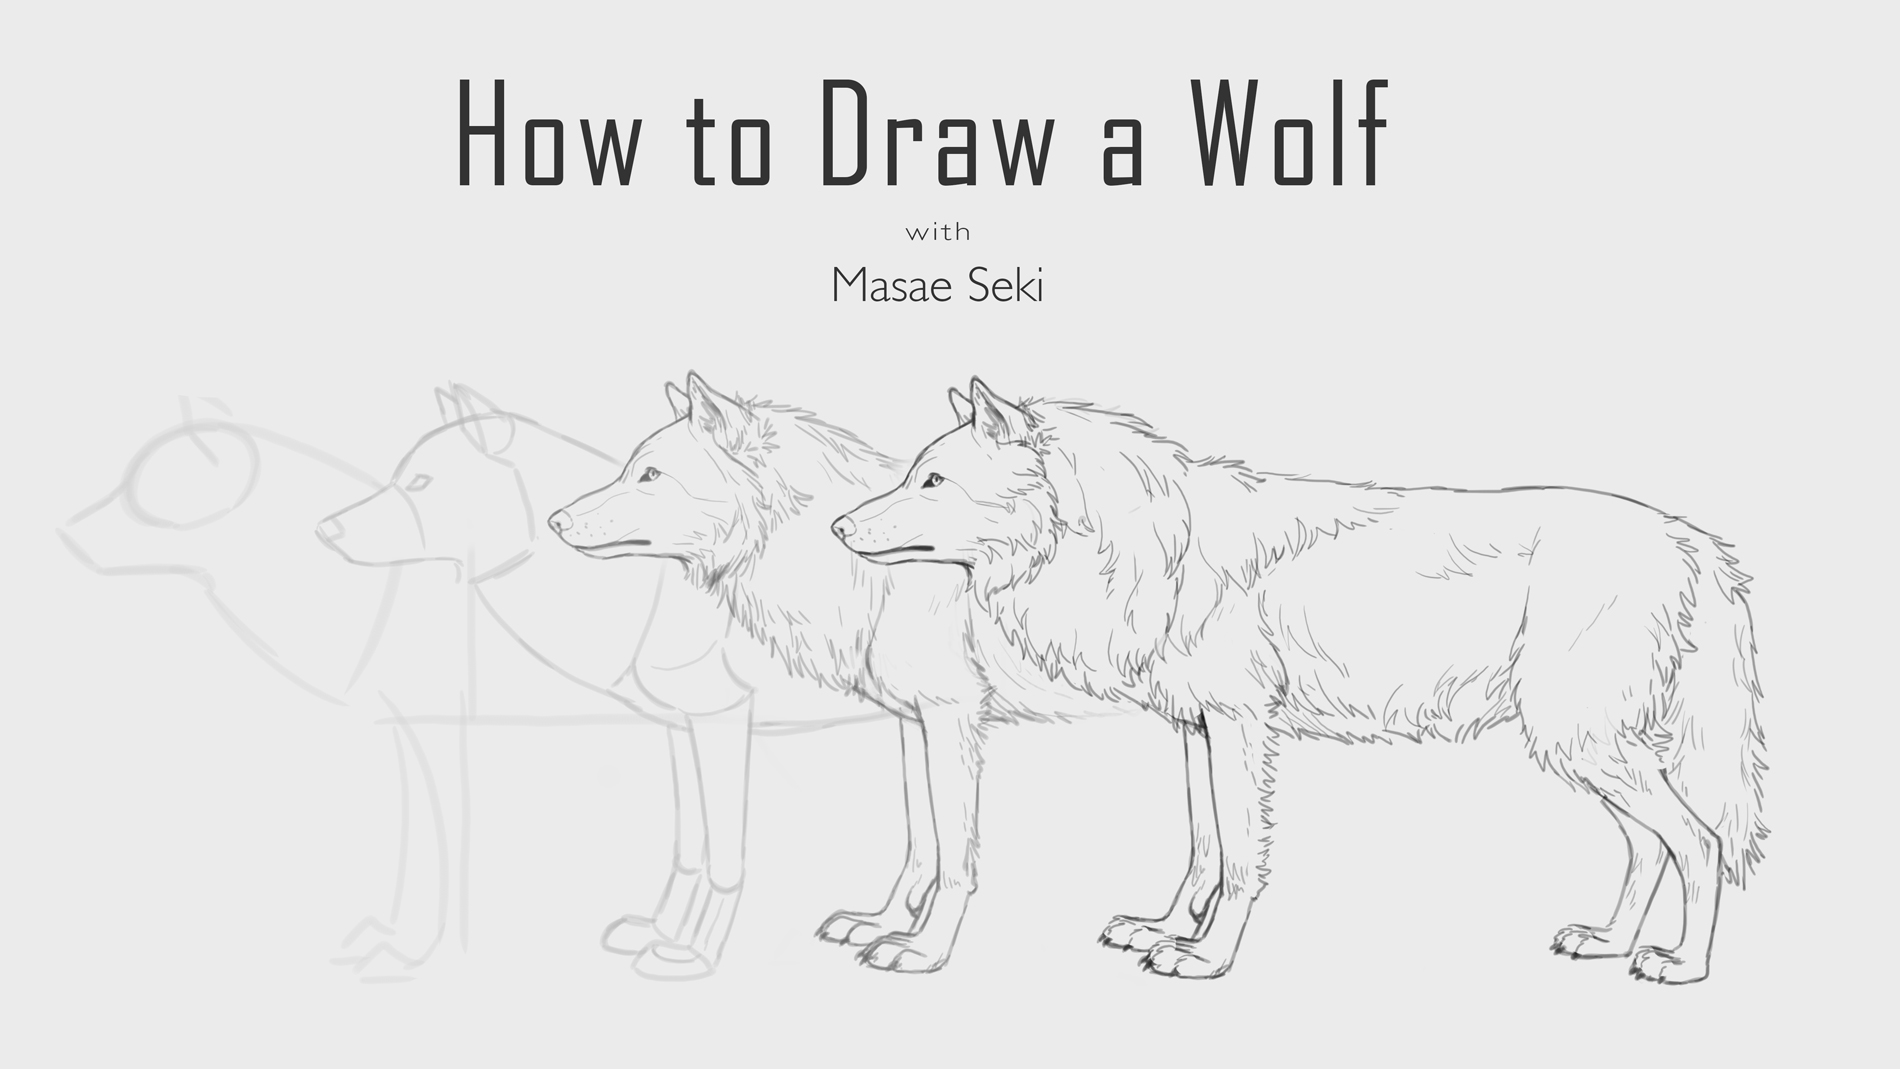 How to draw a wolf | Creative Bloq